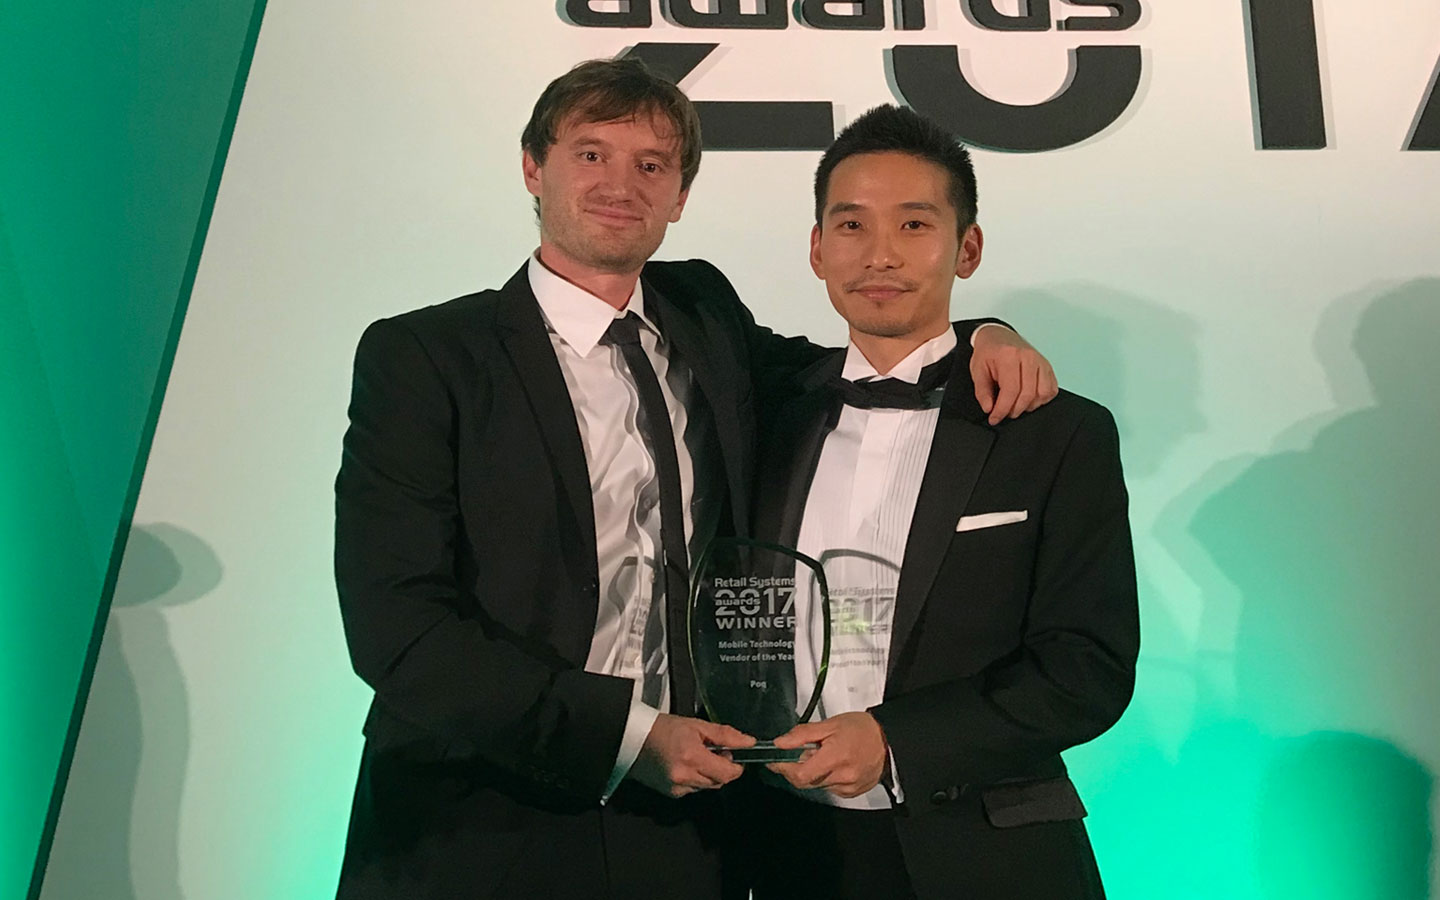 Jun Seki & Michael Langguth win Mobile Technology Vendor of the Year | Poq - the app commerce company